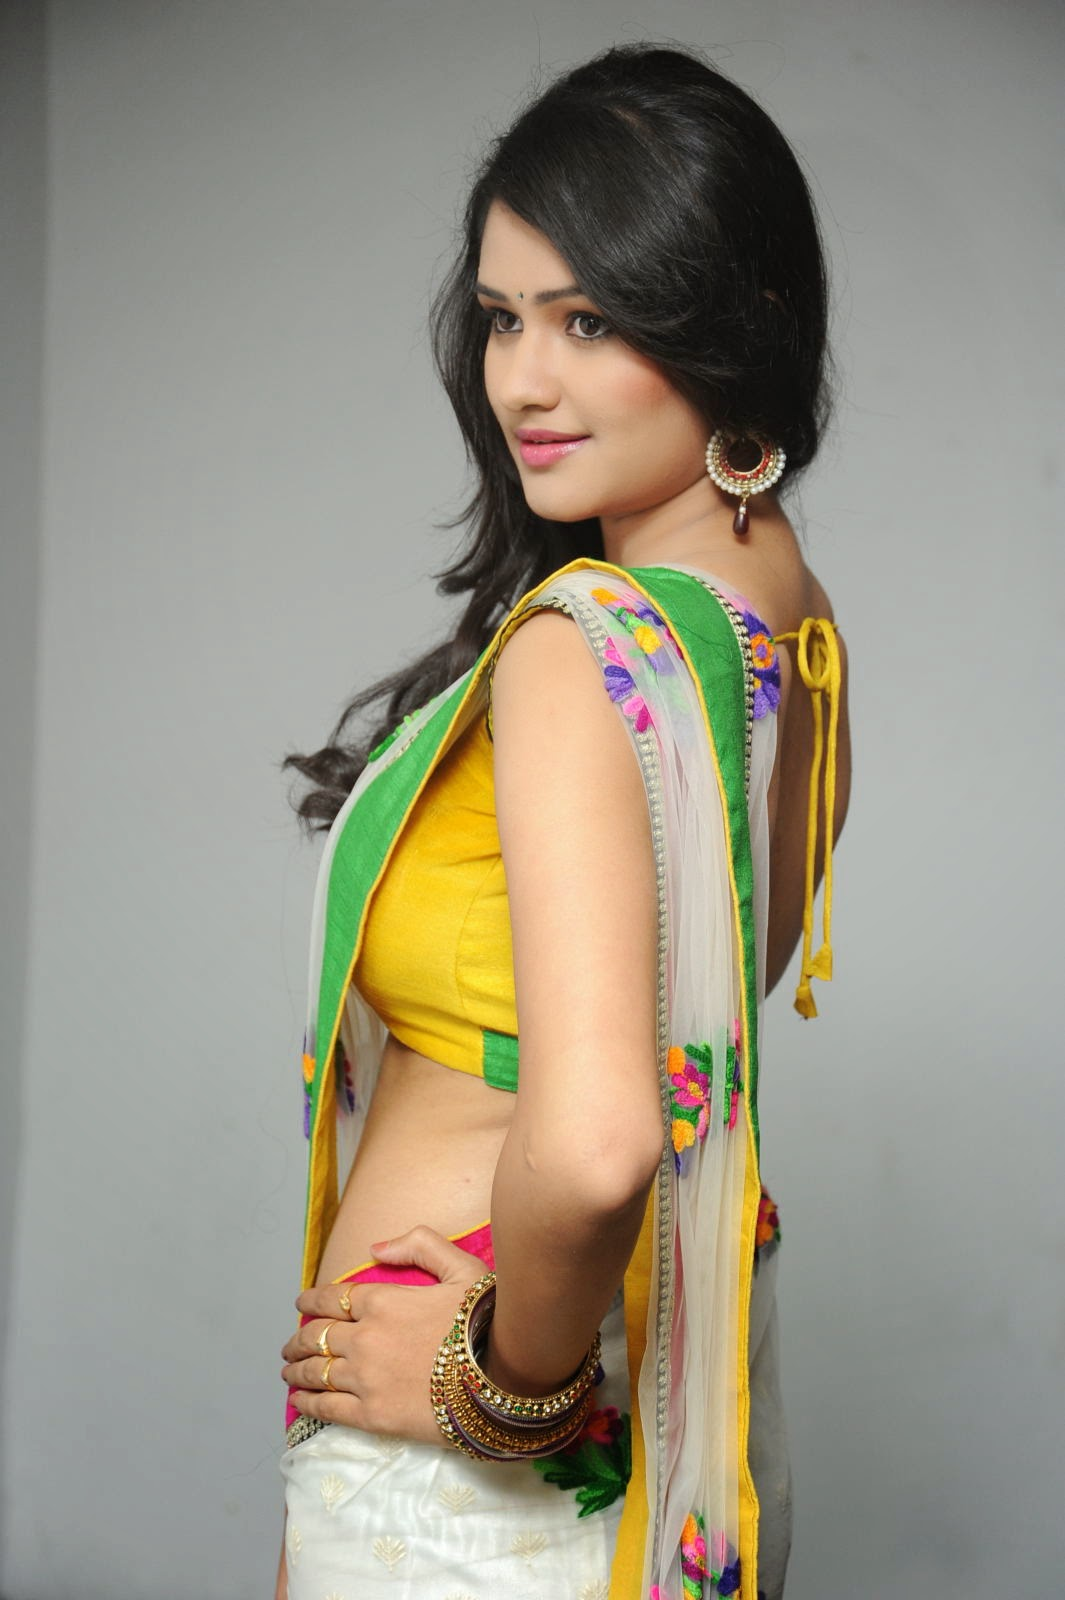 Kushi glamorous saree photos-HQ-Photo-11